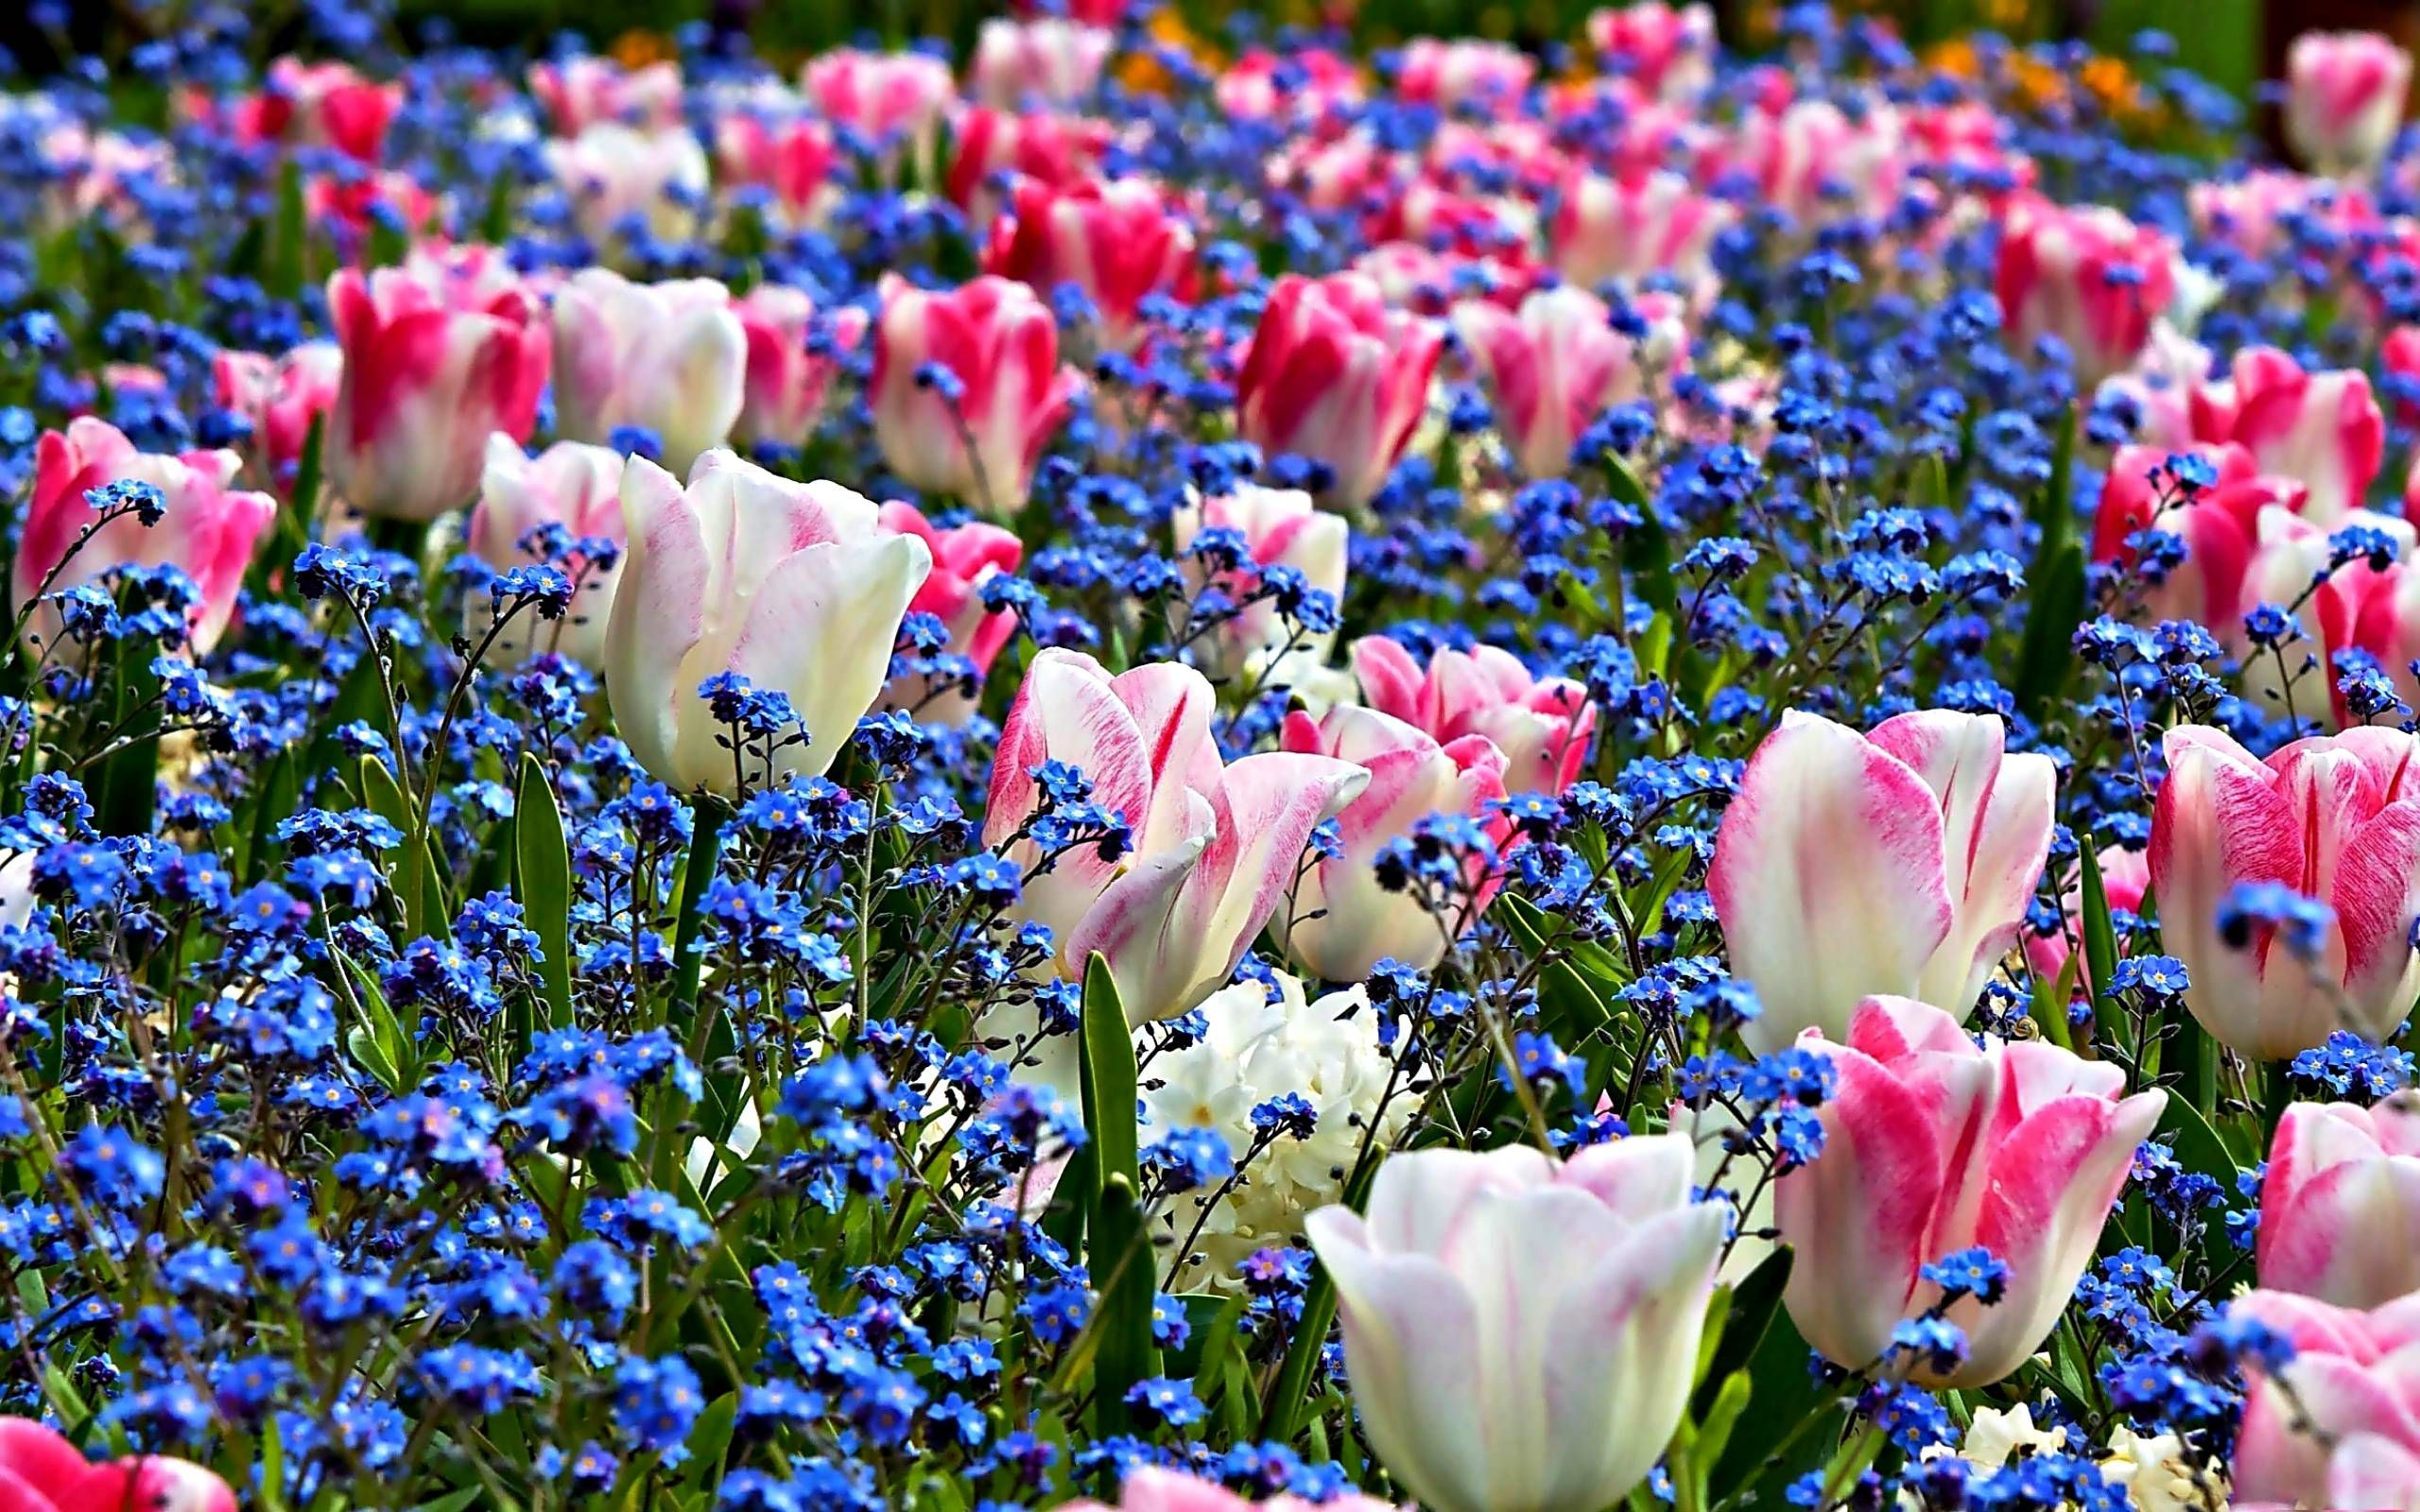 Flowers wallpapers high definition wallpapers high definition - Spring Flowers Wallpapers Hd Resolution